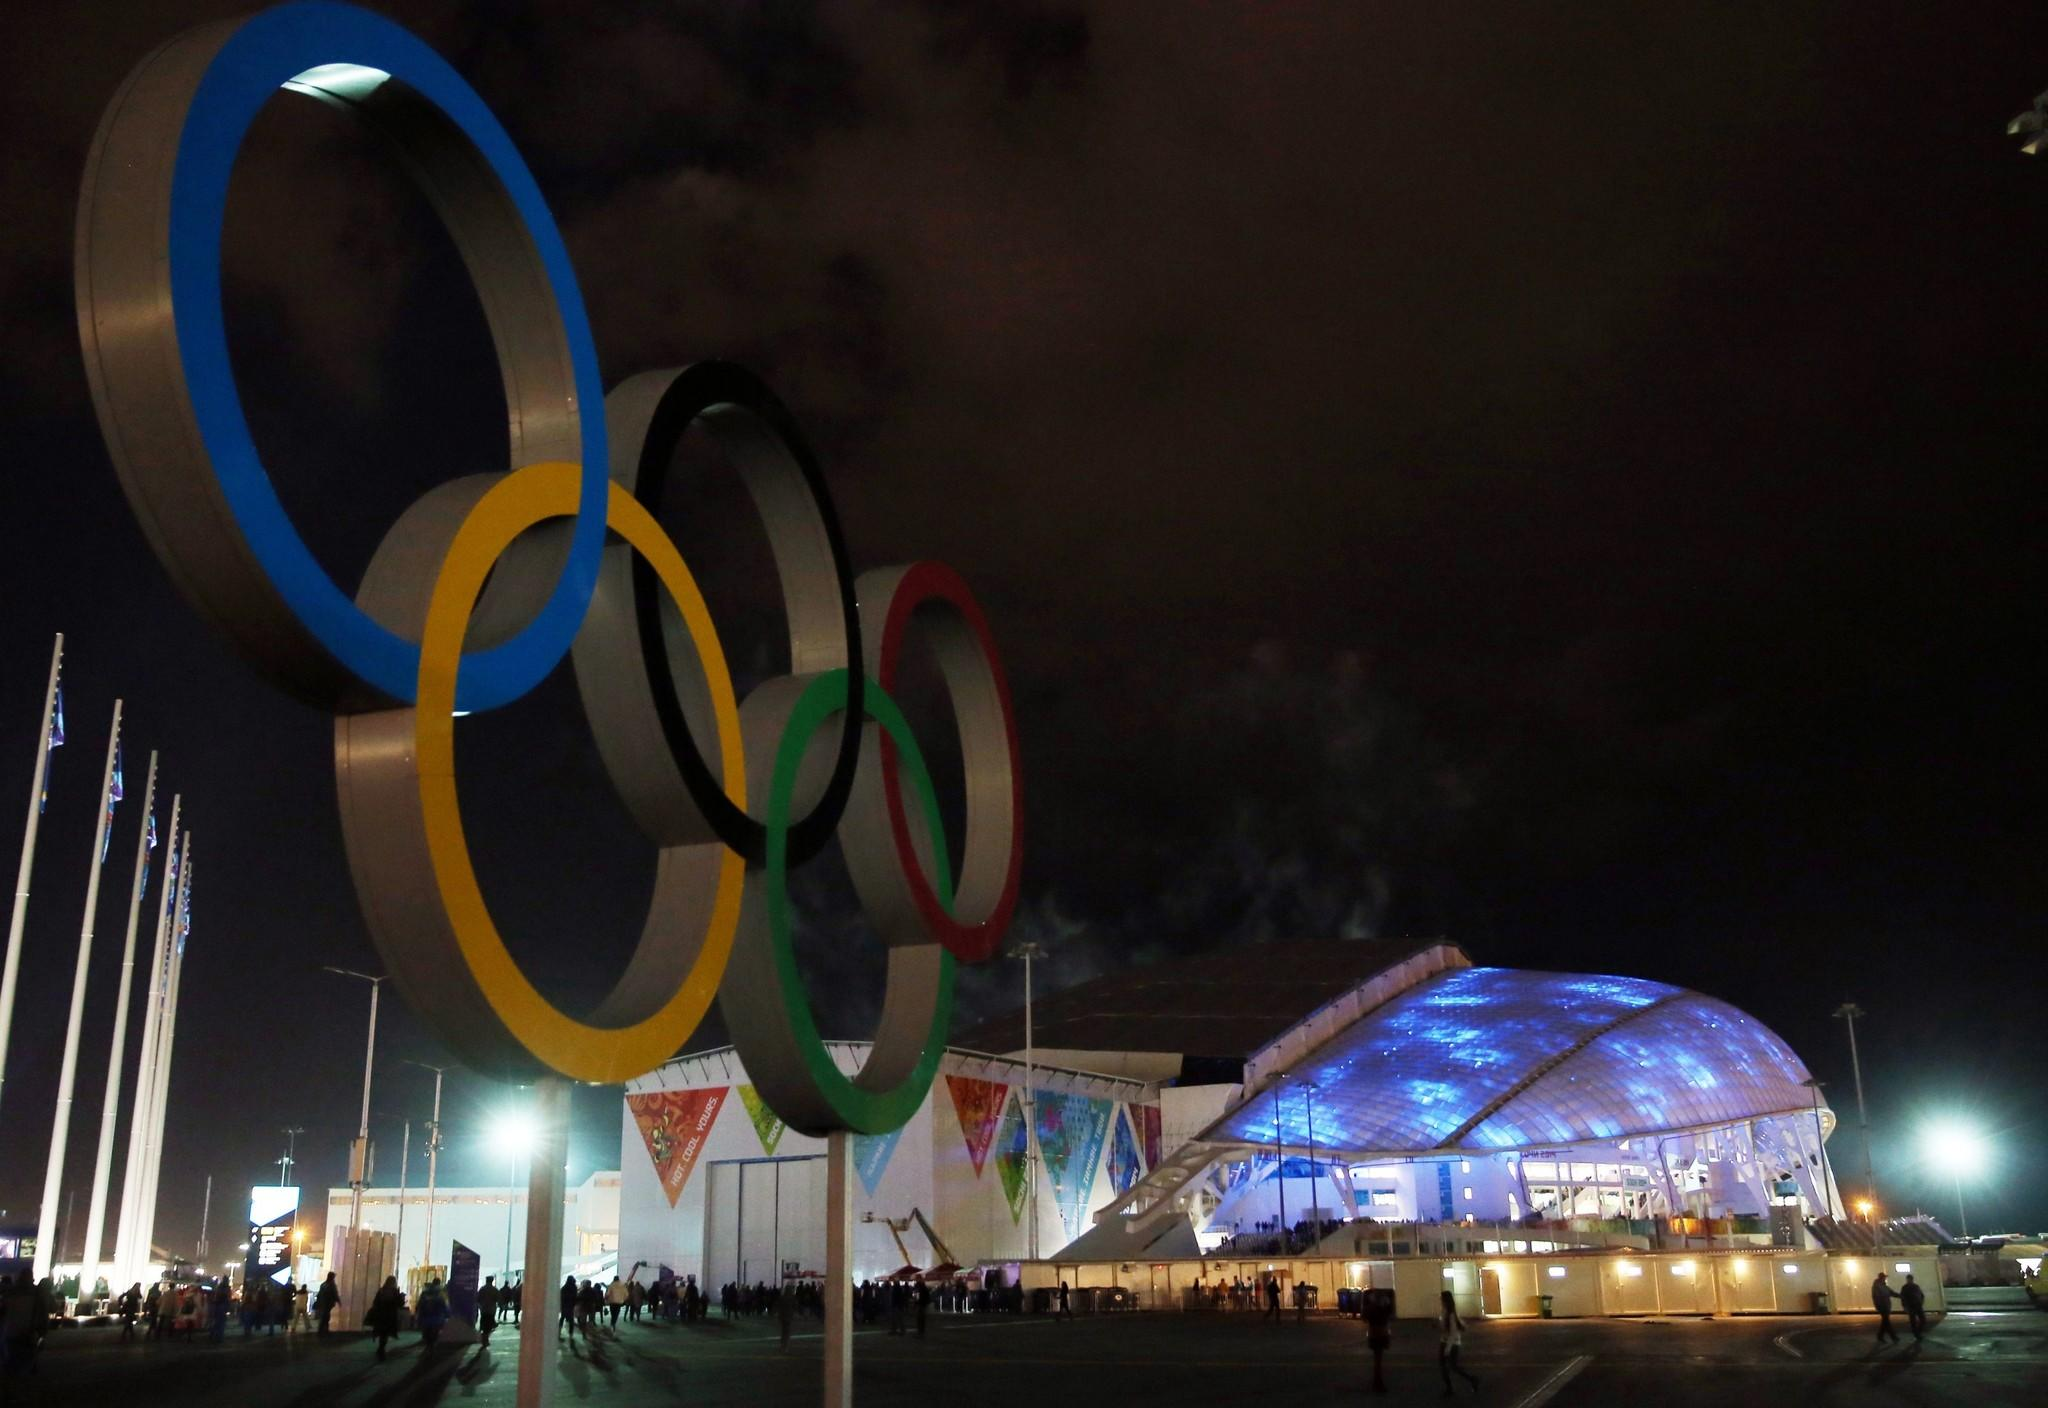 A view from outside the Fisht Olympic Stadium on Feb. 4 prior to the start of the 2014 Sochi Winter Olympics.